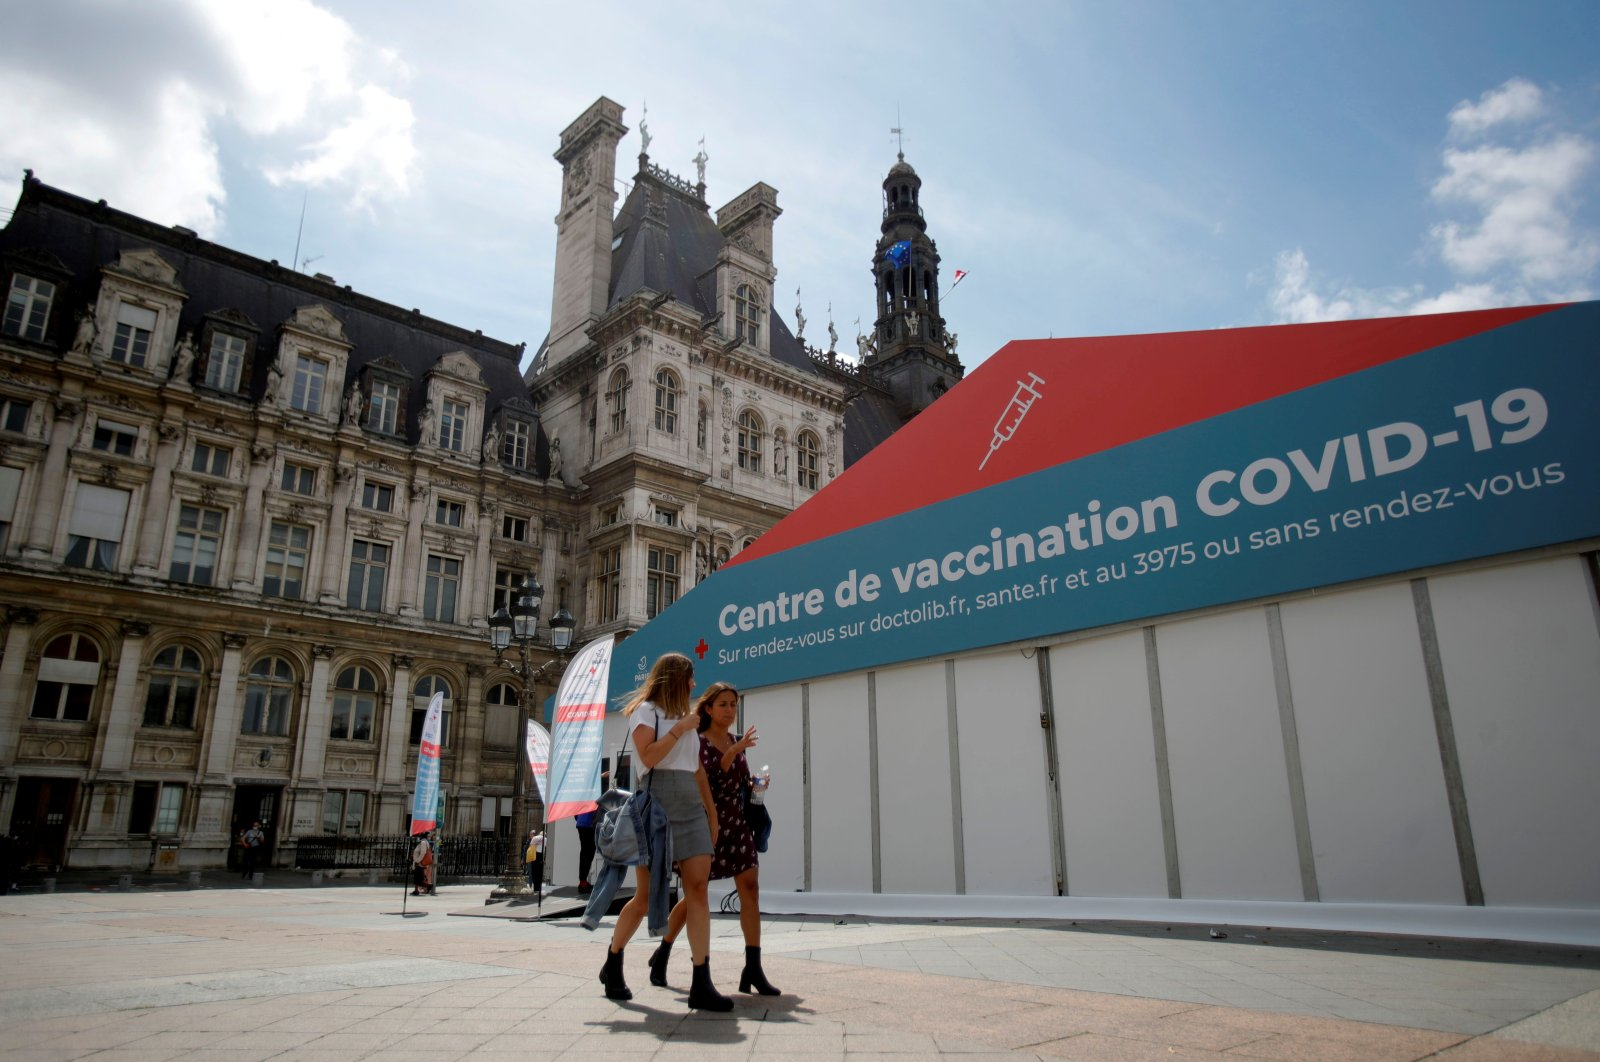 Women walk past a coronavirus vaccination center installed in front of a town hall, Paris, France, July 7, 2021. (Reuters Photo)